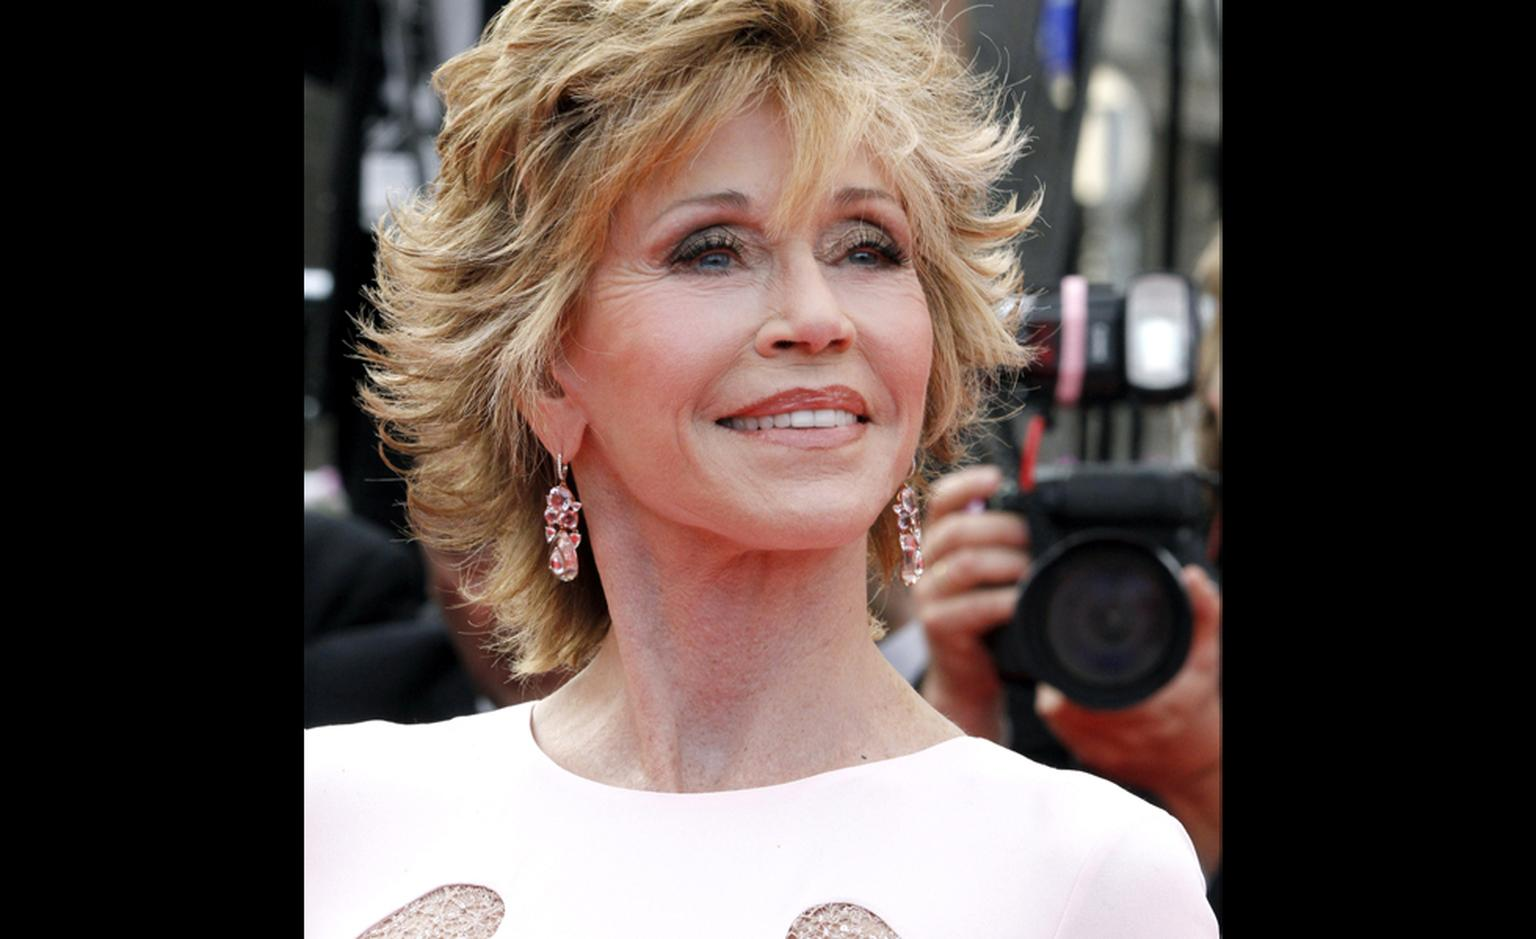 Jane Fonda wear Chopard tourmaline, spinel, morganite and diamond earrings on the red carpet at Cannes Film Festival 2011.